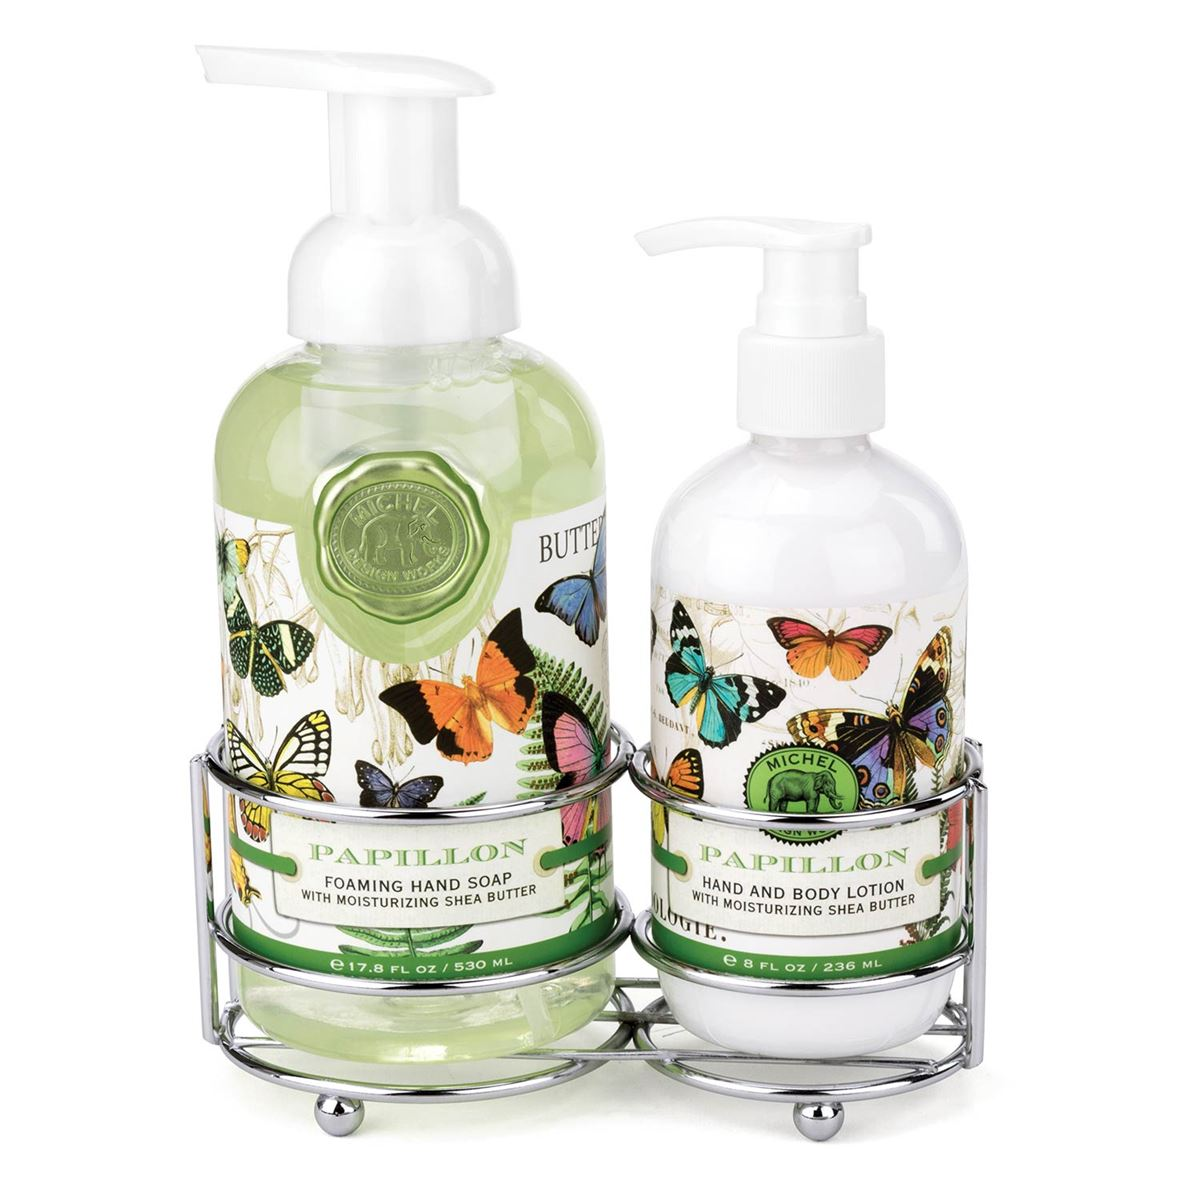 Michel Design Works Foaming Hand Soap And Lotion Caddy Gift Set Papil Gigi Specialty Pharmacy,Acrylic Nail Designs Natural Colors